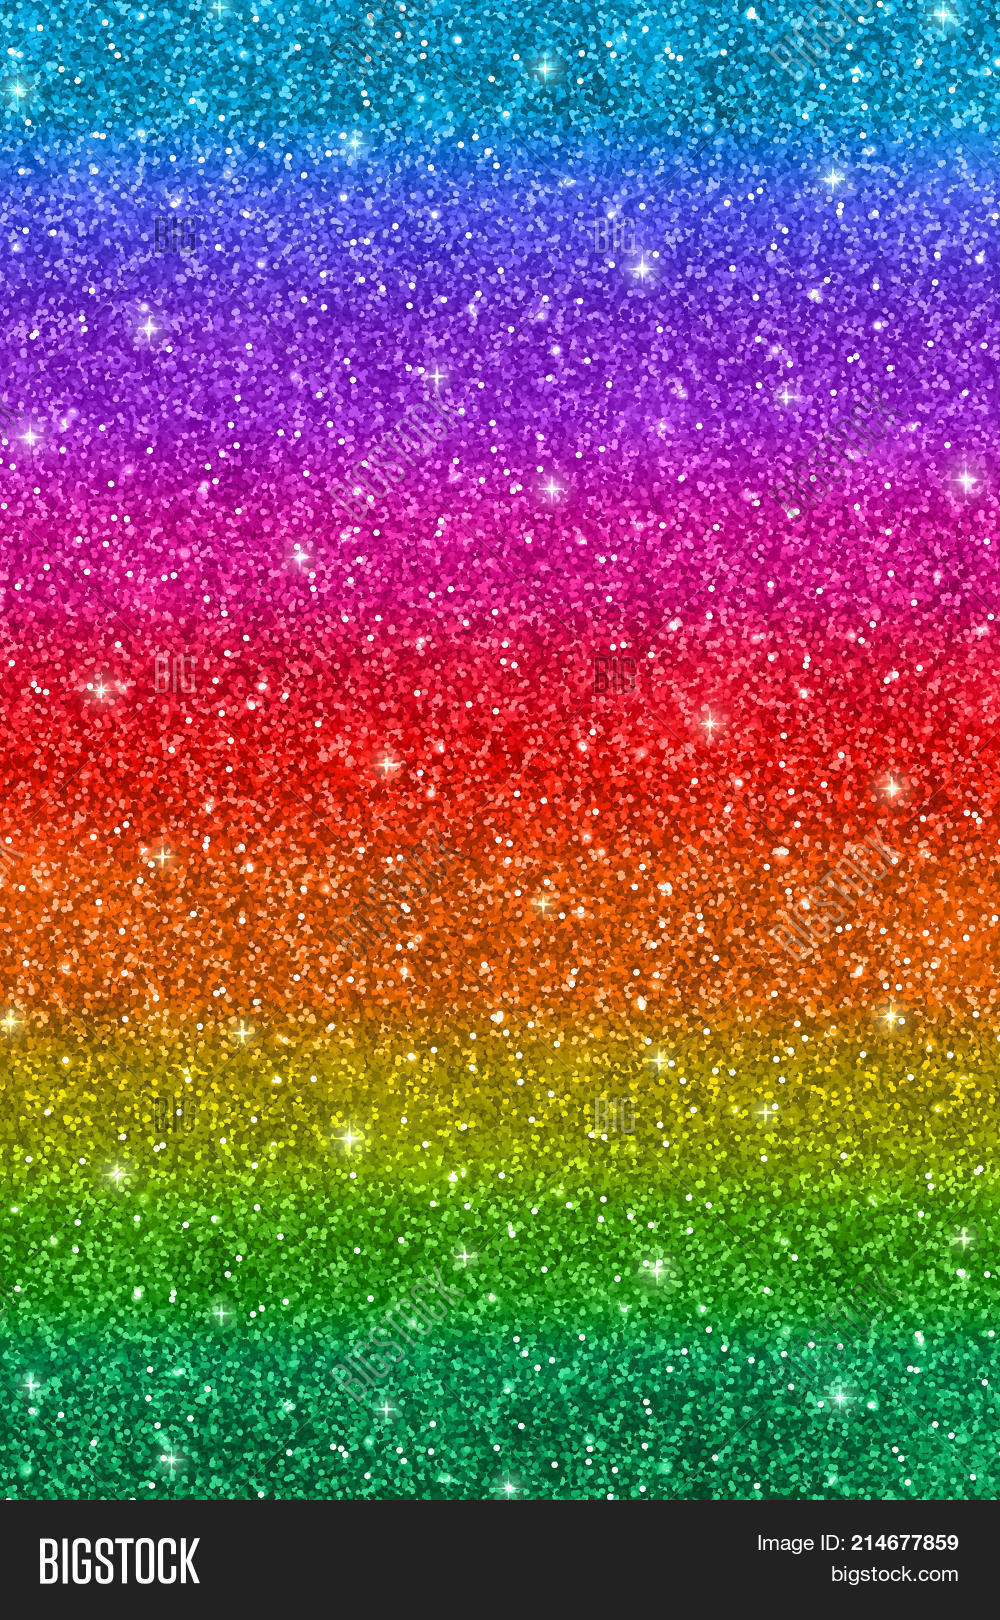 102cb6f7 Vertical multicolored glitter abstract background, rainbow colors